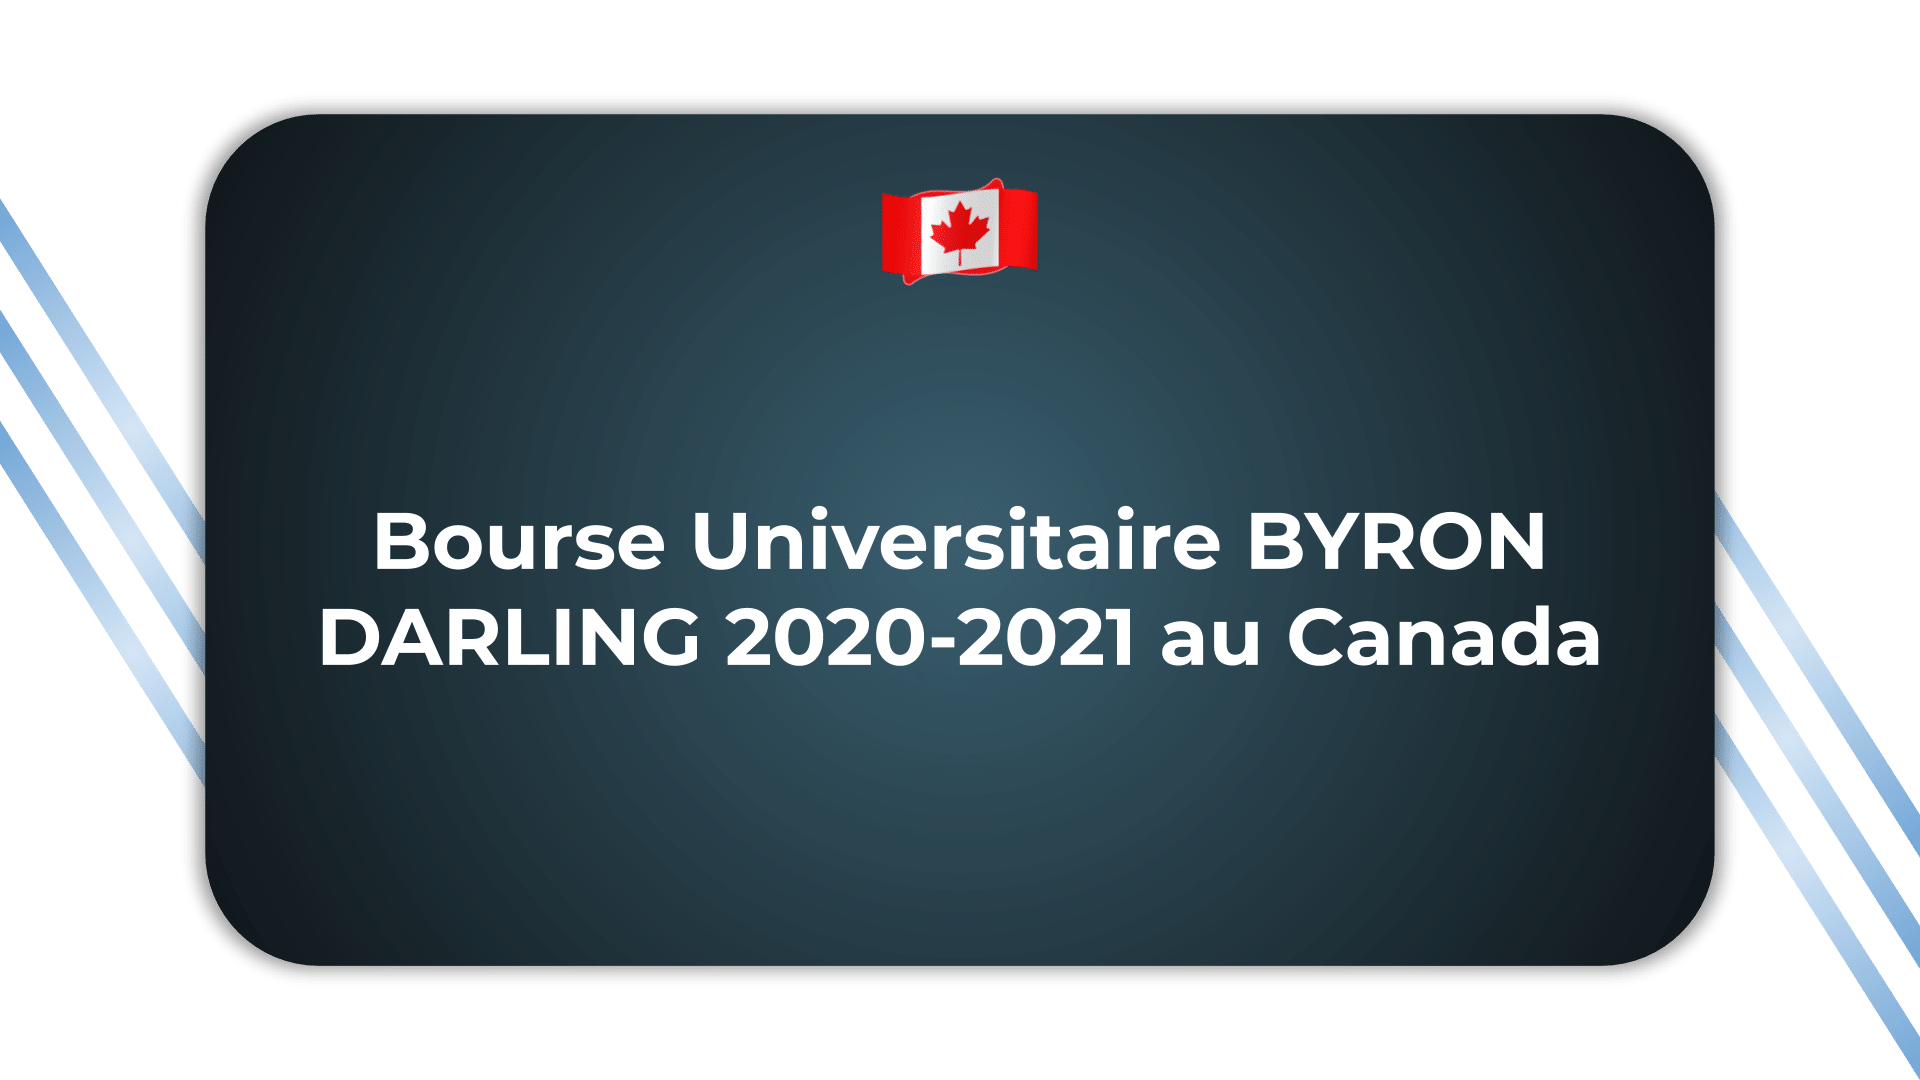 Bourse Universitaire BYRON DARLING